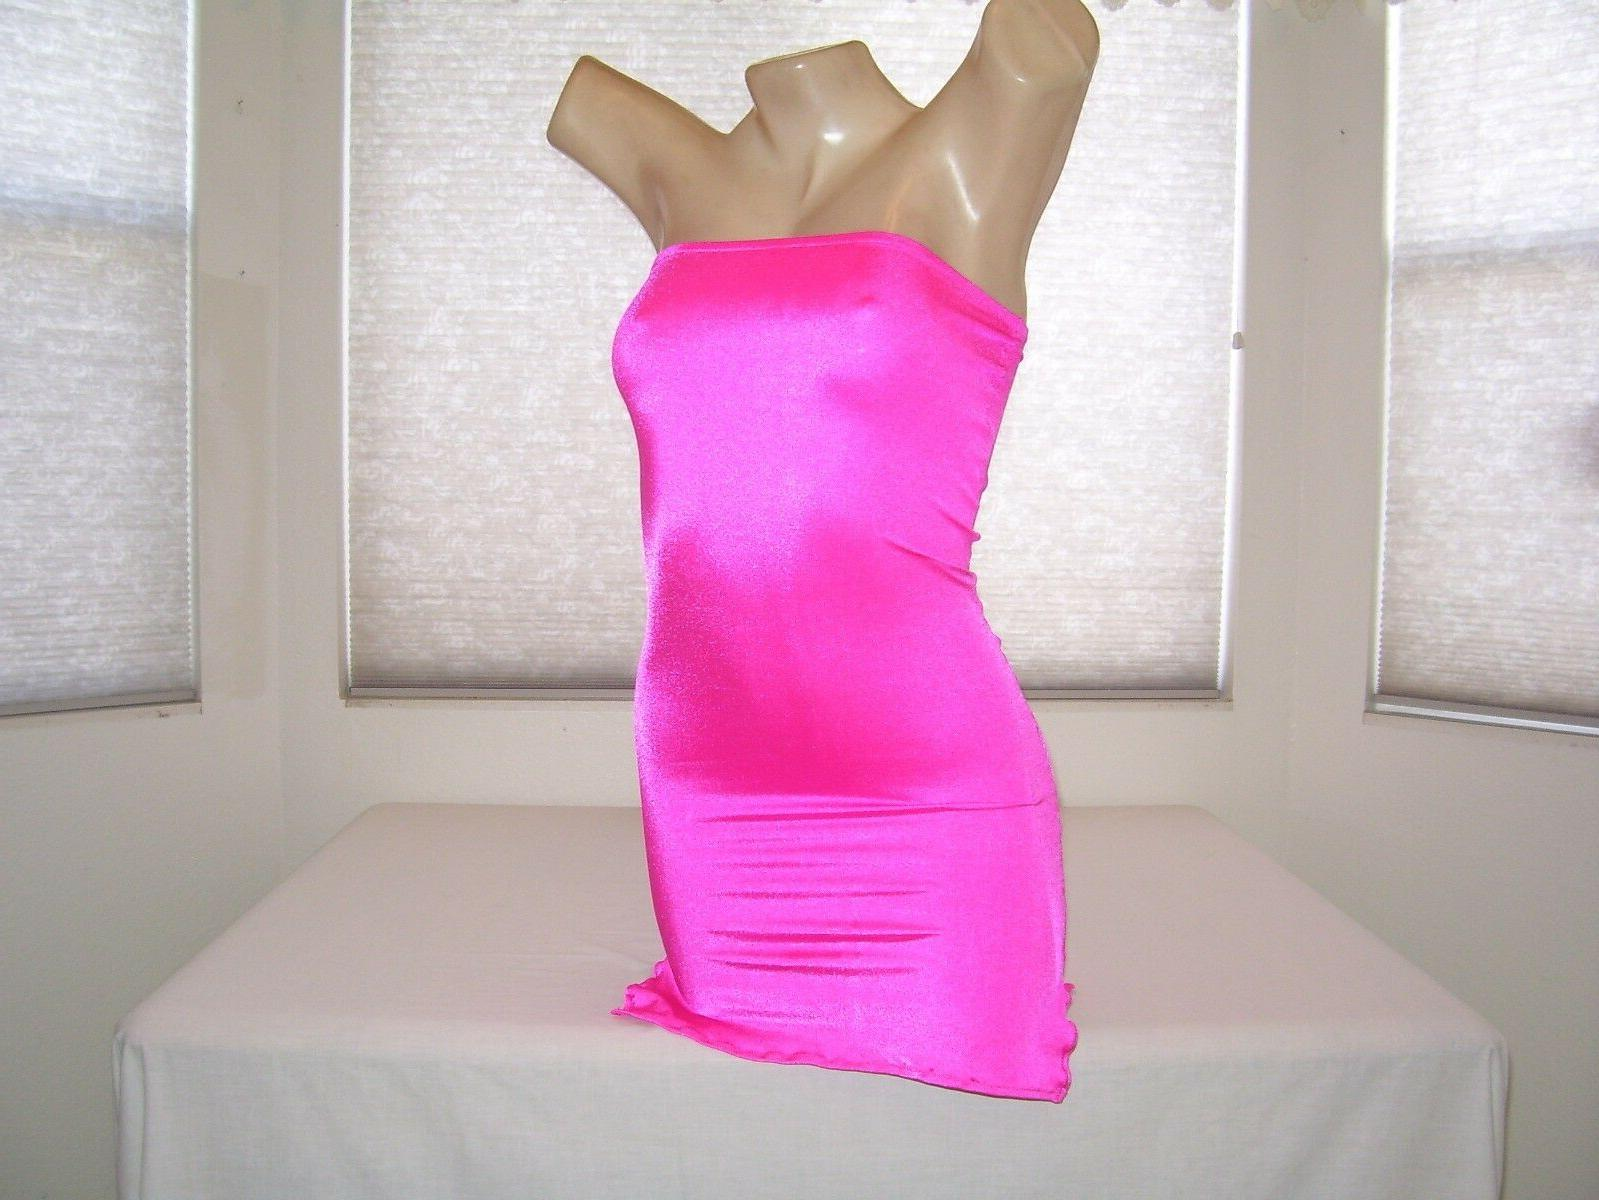 New Stripper Exotic Hot *Pink* Dress